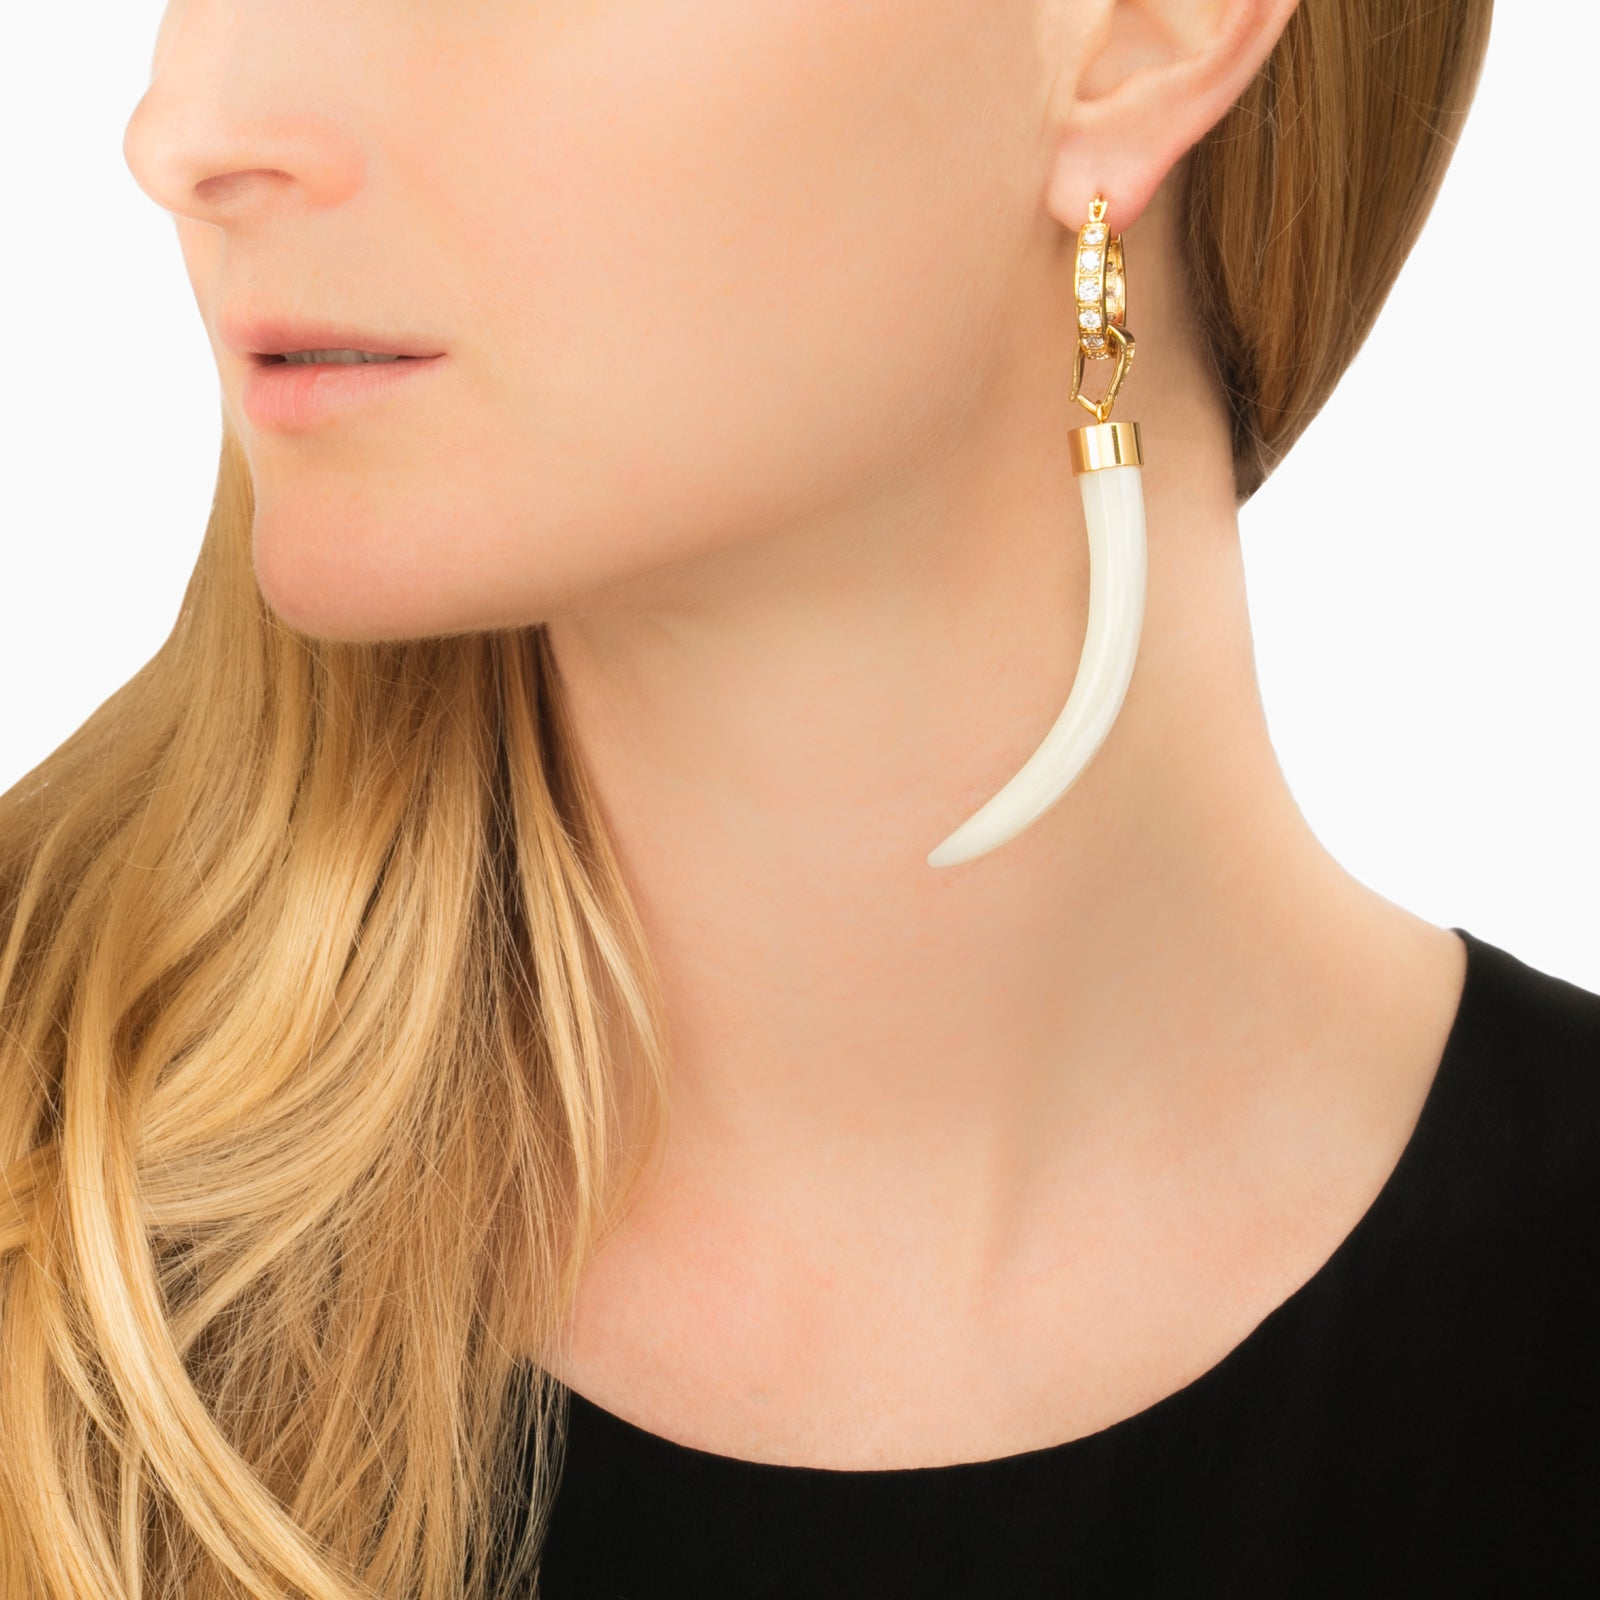 Hoop With Horn - Ioselliani - Earrings | Broken English Jewelry